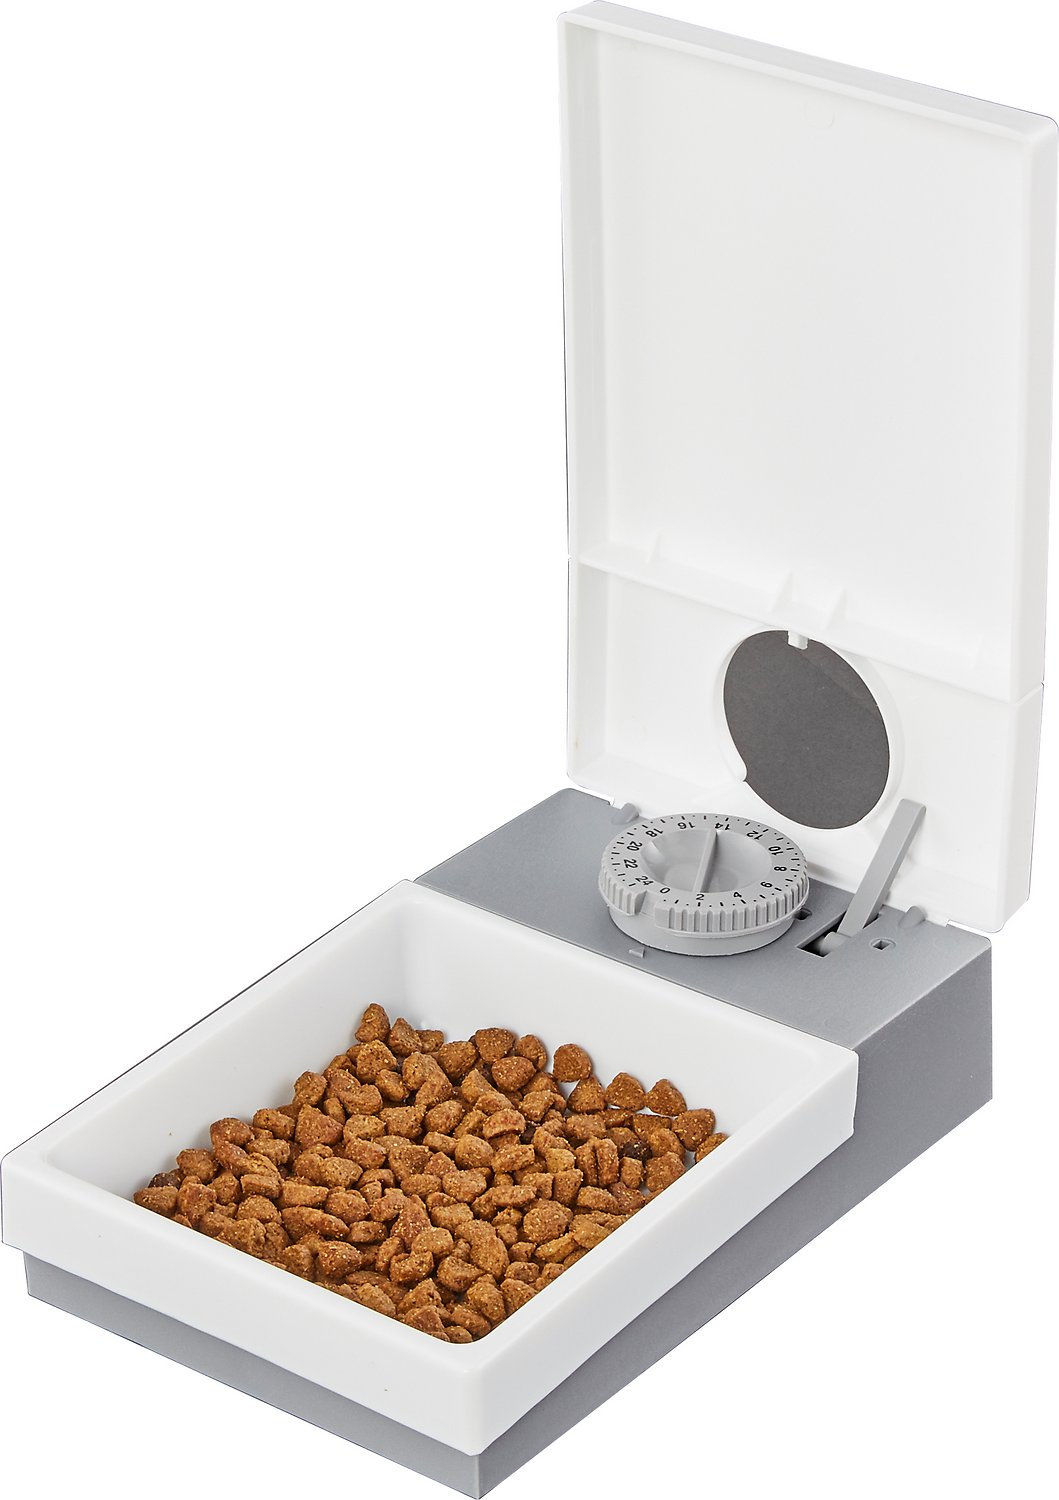 Cat Mate C10 1 Bowl Automatic Pet Feeder 24 Hour Chewy Com